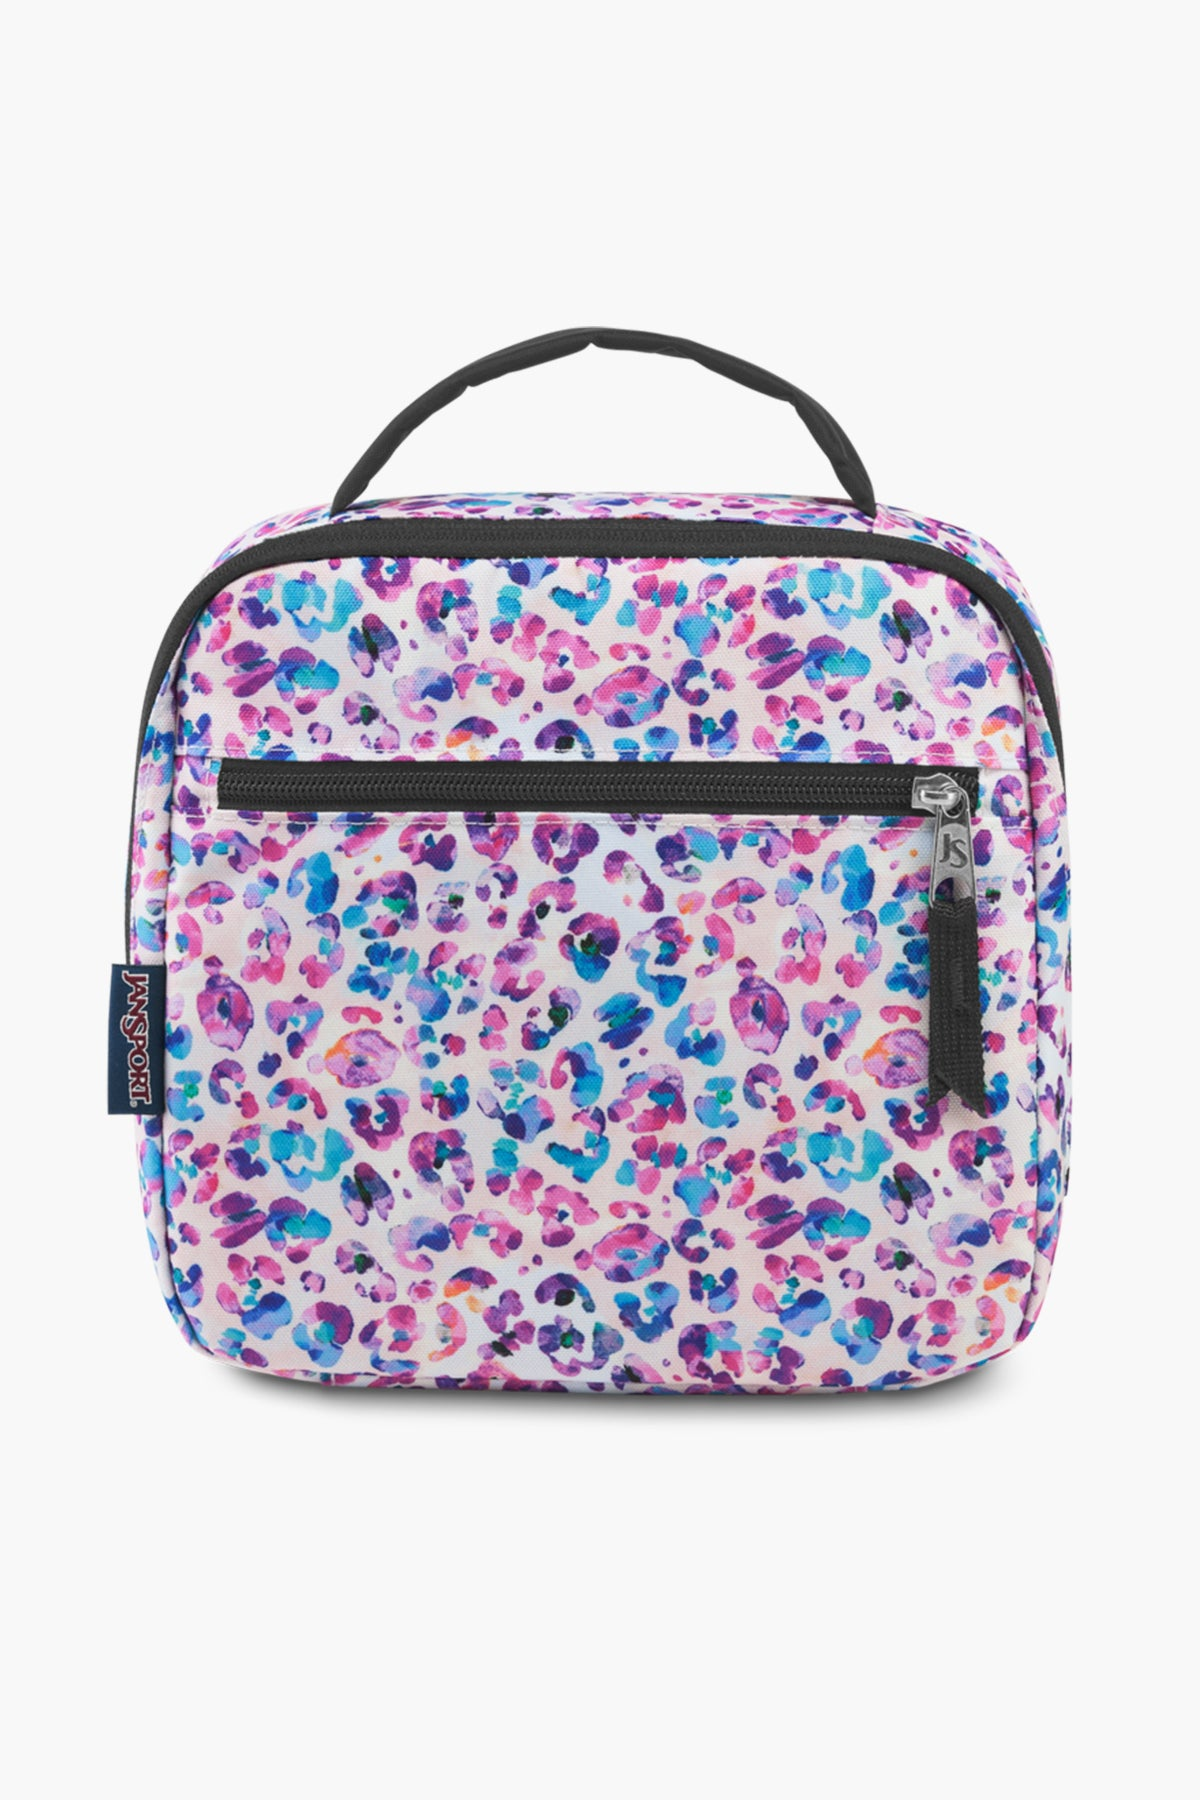 JanSport Lunch Break Kids Lunchbox - Leopard Dots